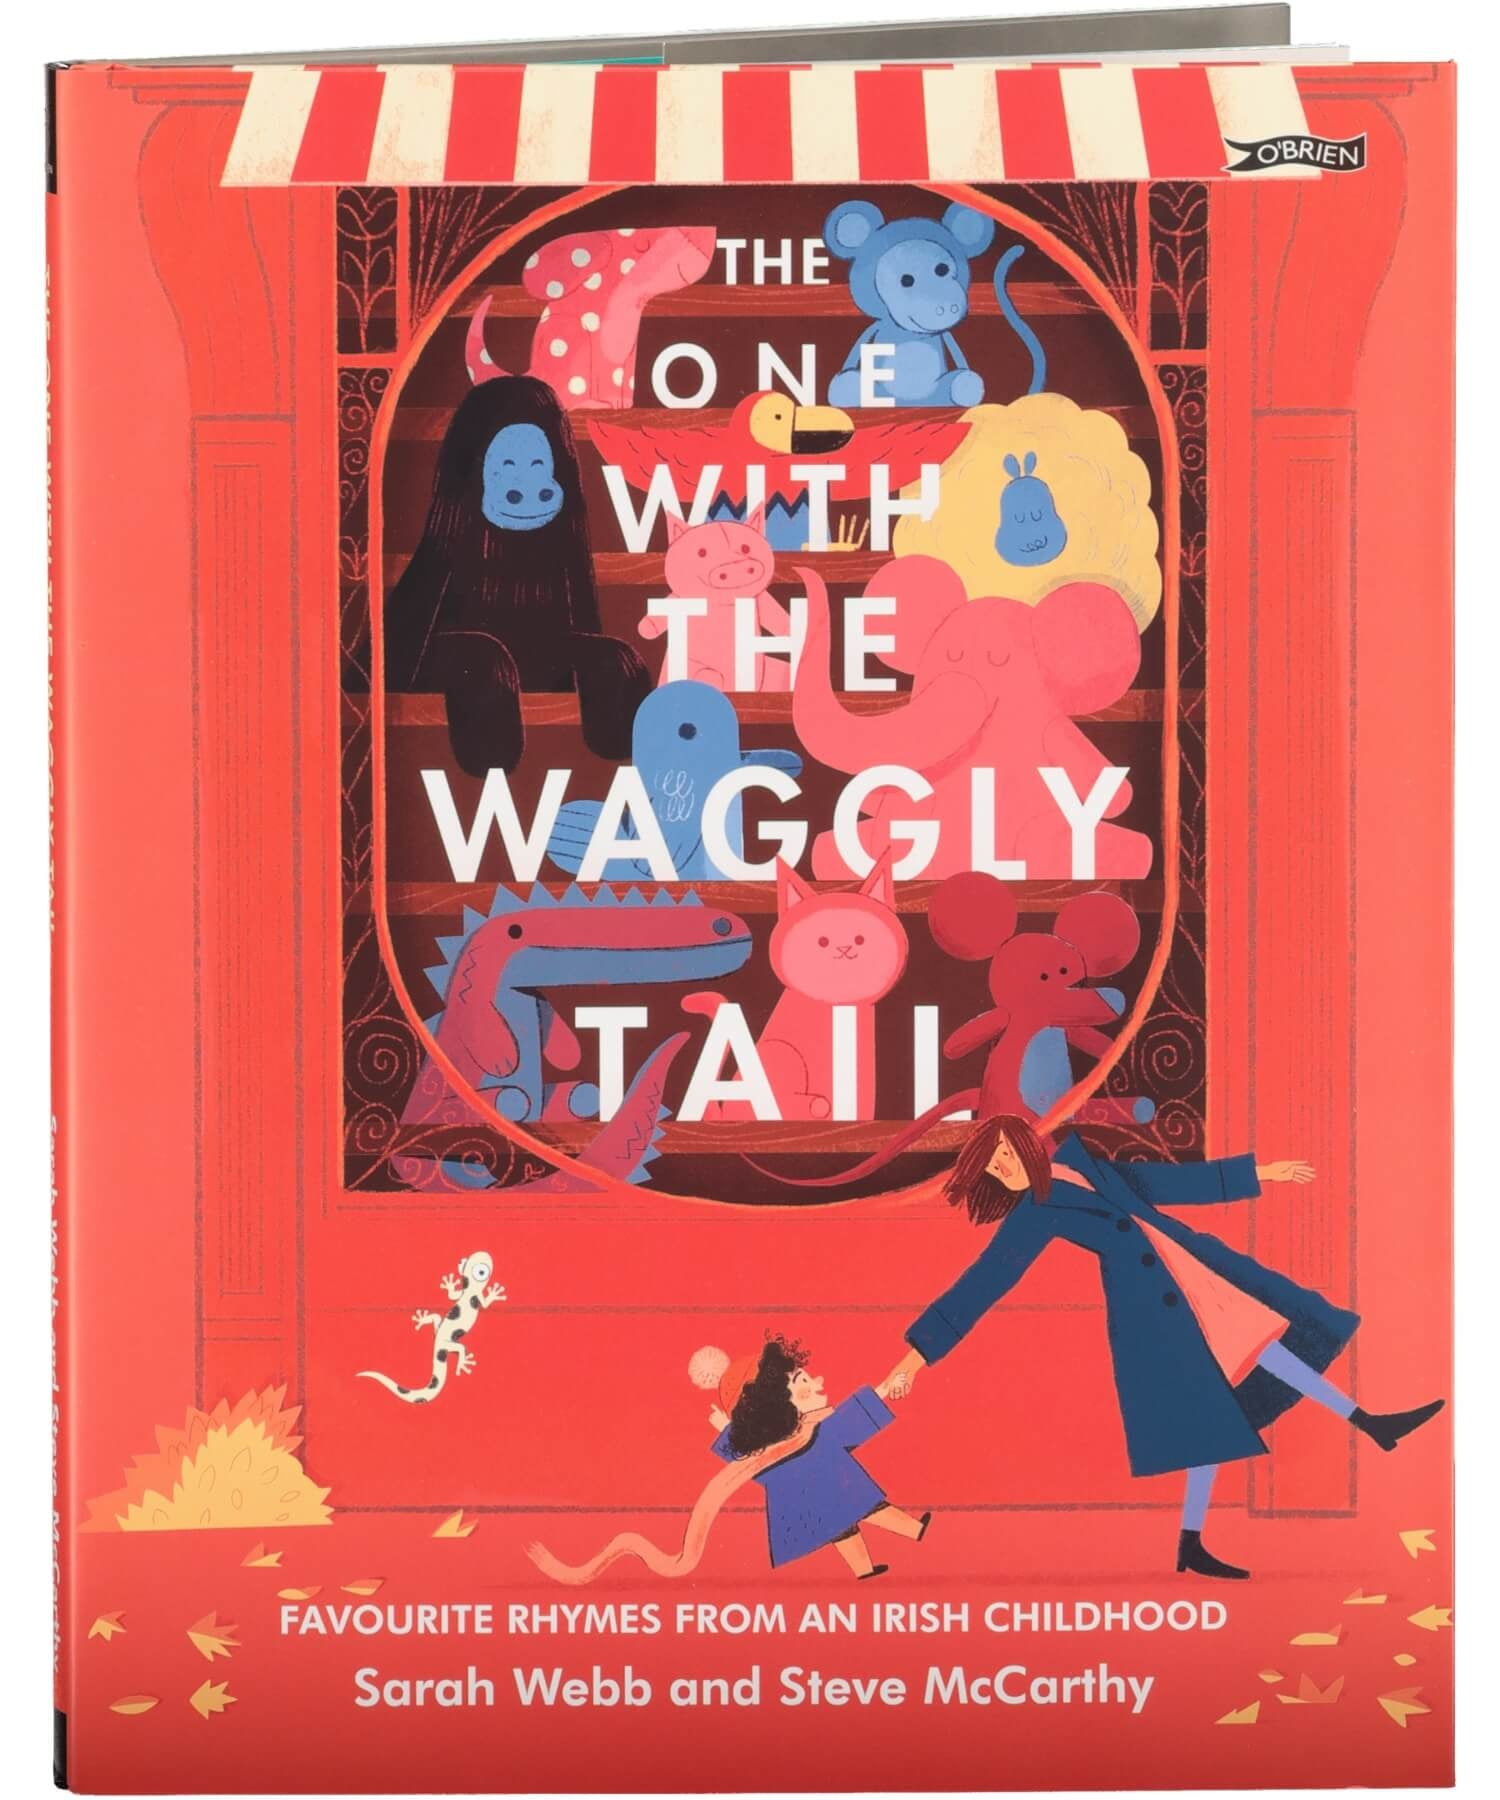 The One With The Waggly Tail - [The O'Brien Press] - Books & Stationery - Irish Gifts